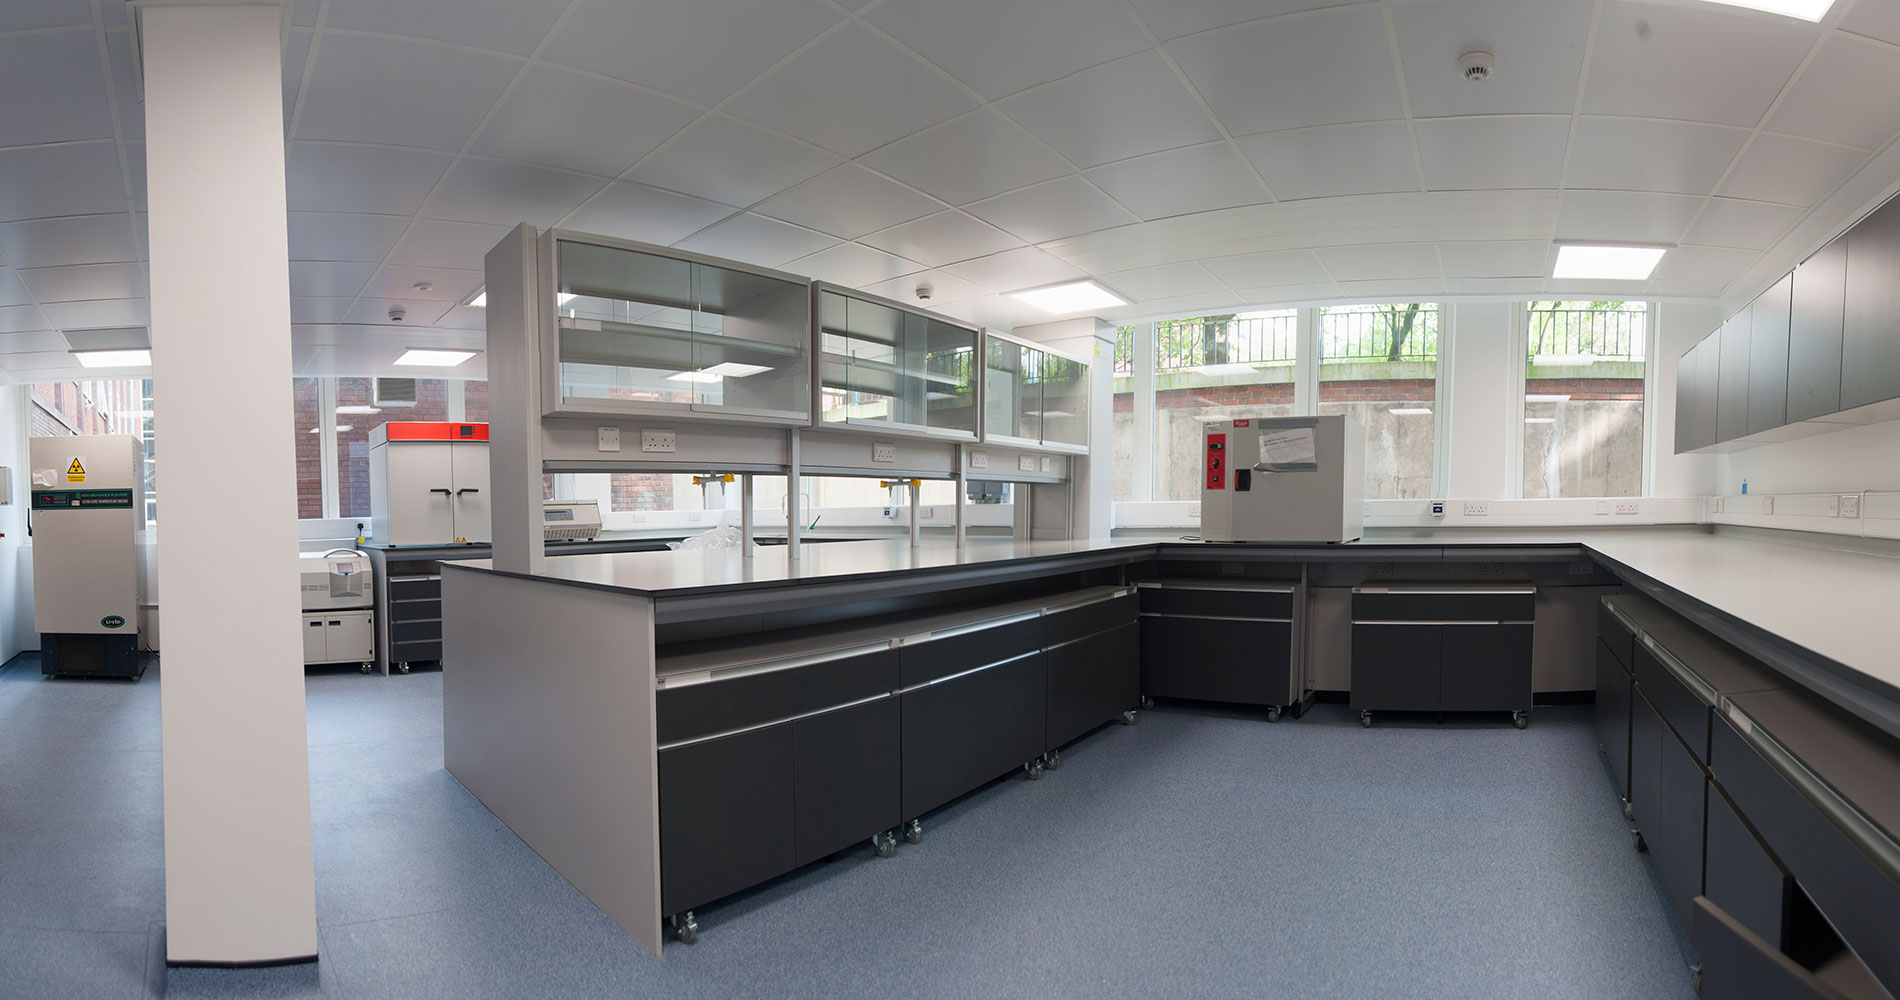 Laboratories of the Williamson Research Centre University of Manchester